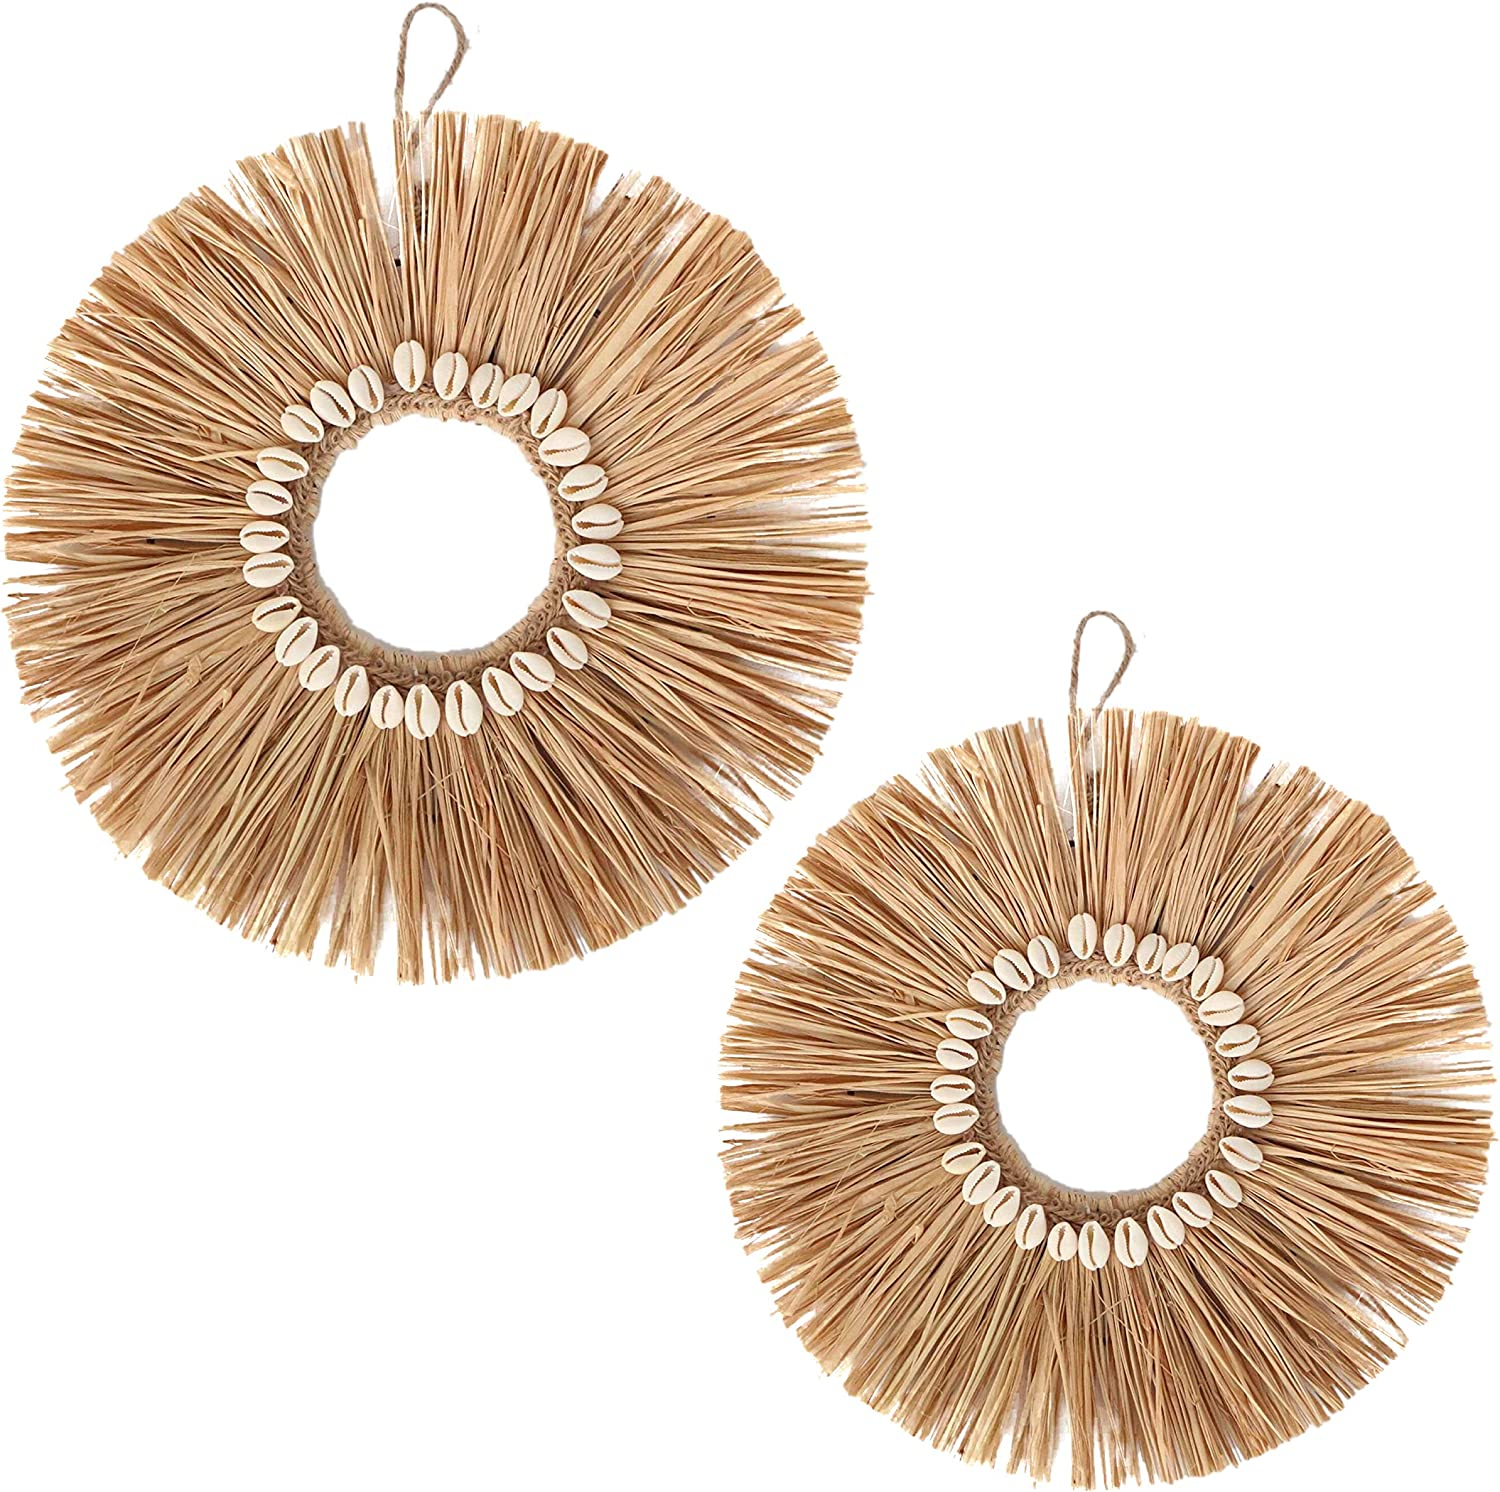 """Boho Wall Decor made from Fringe Raffia and White Sea Shells, Shabby Chic Rustic Home Decorations and hanging Wall Accents for Living Room. Match with bamboo room decor and furniture - 2-pieces are 13"""" & 11.5"""" by Lollici Designs"""